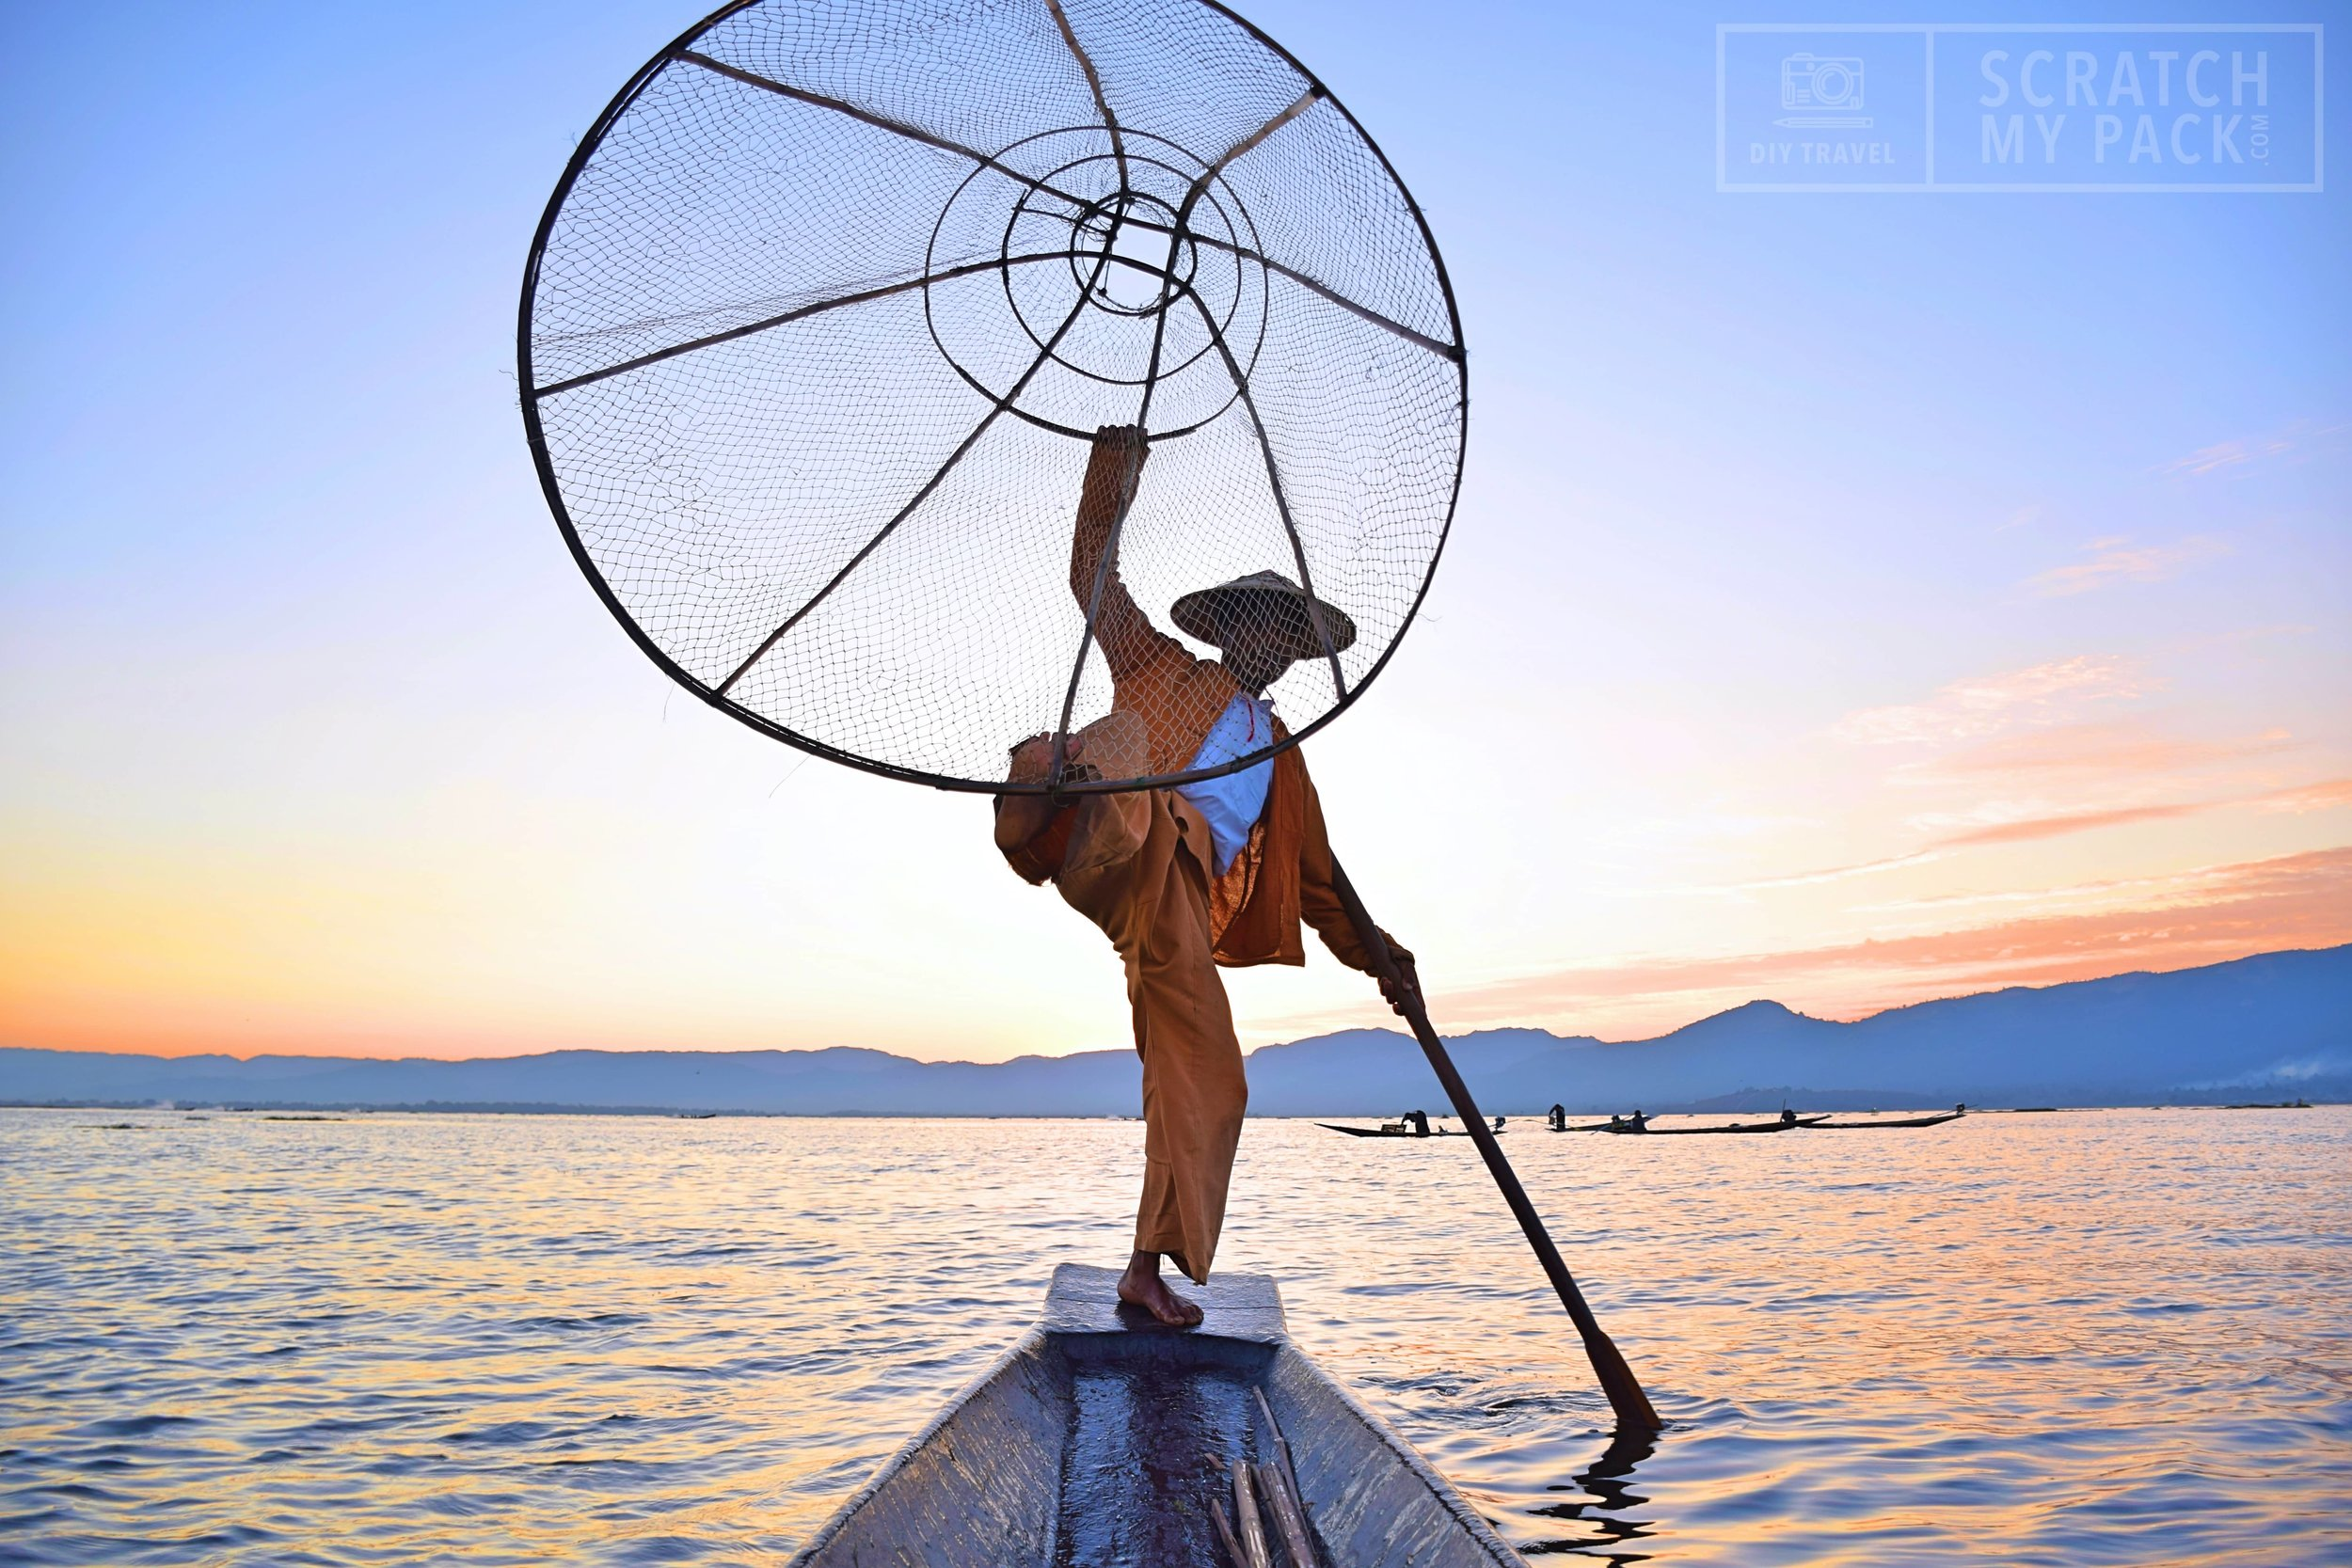 Inle Lake: Get up close with the fisherman